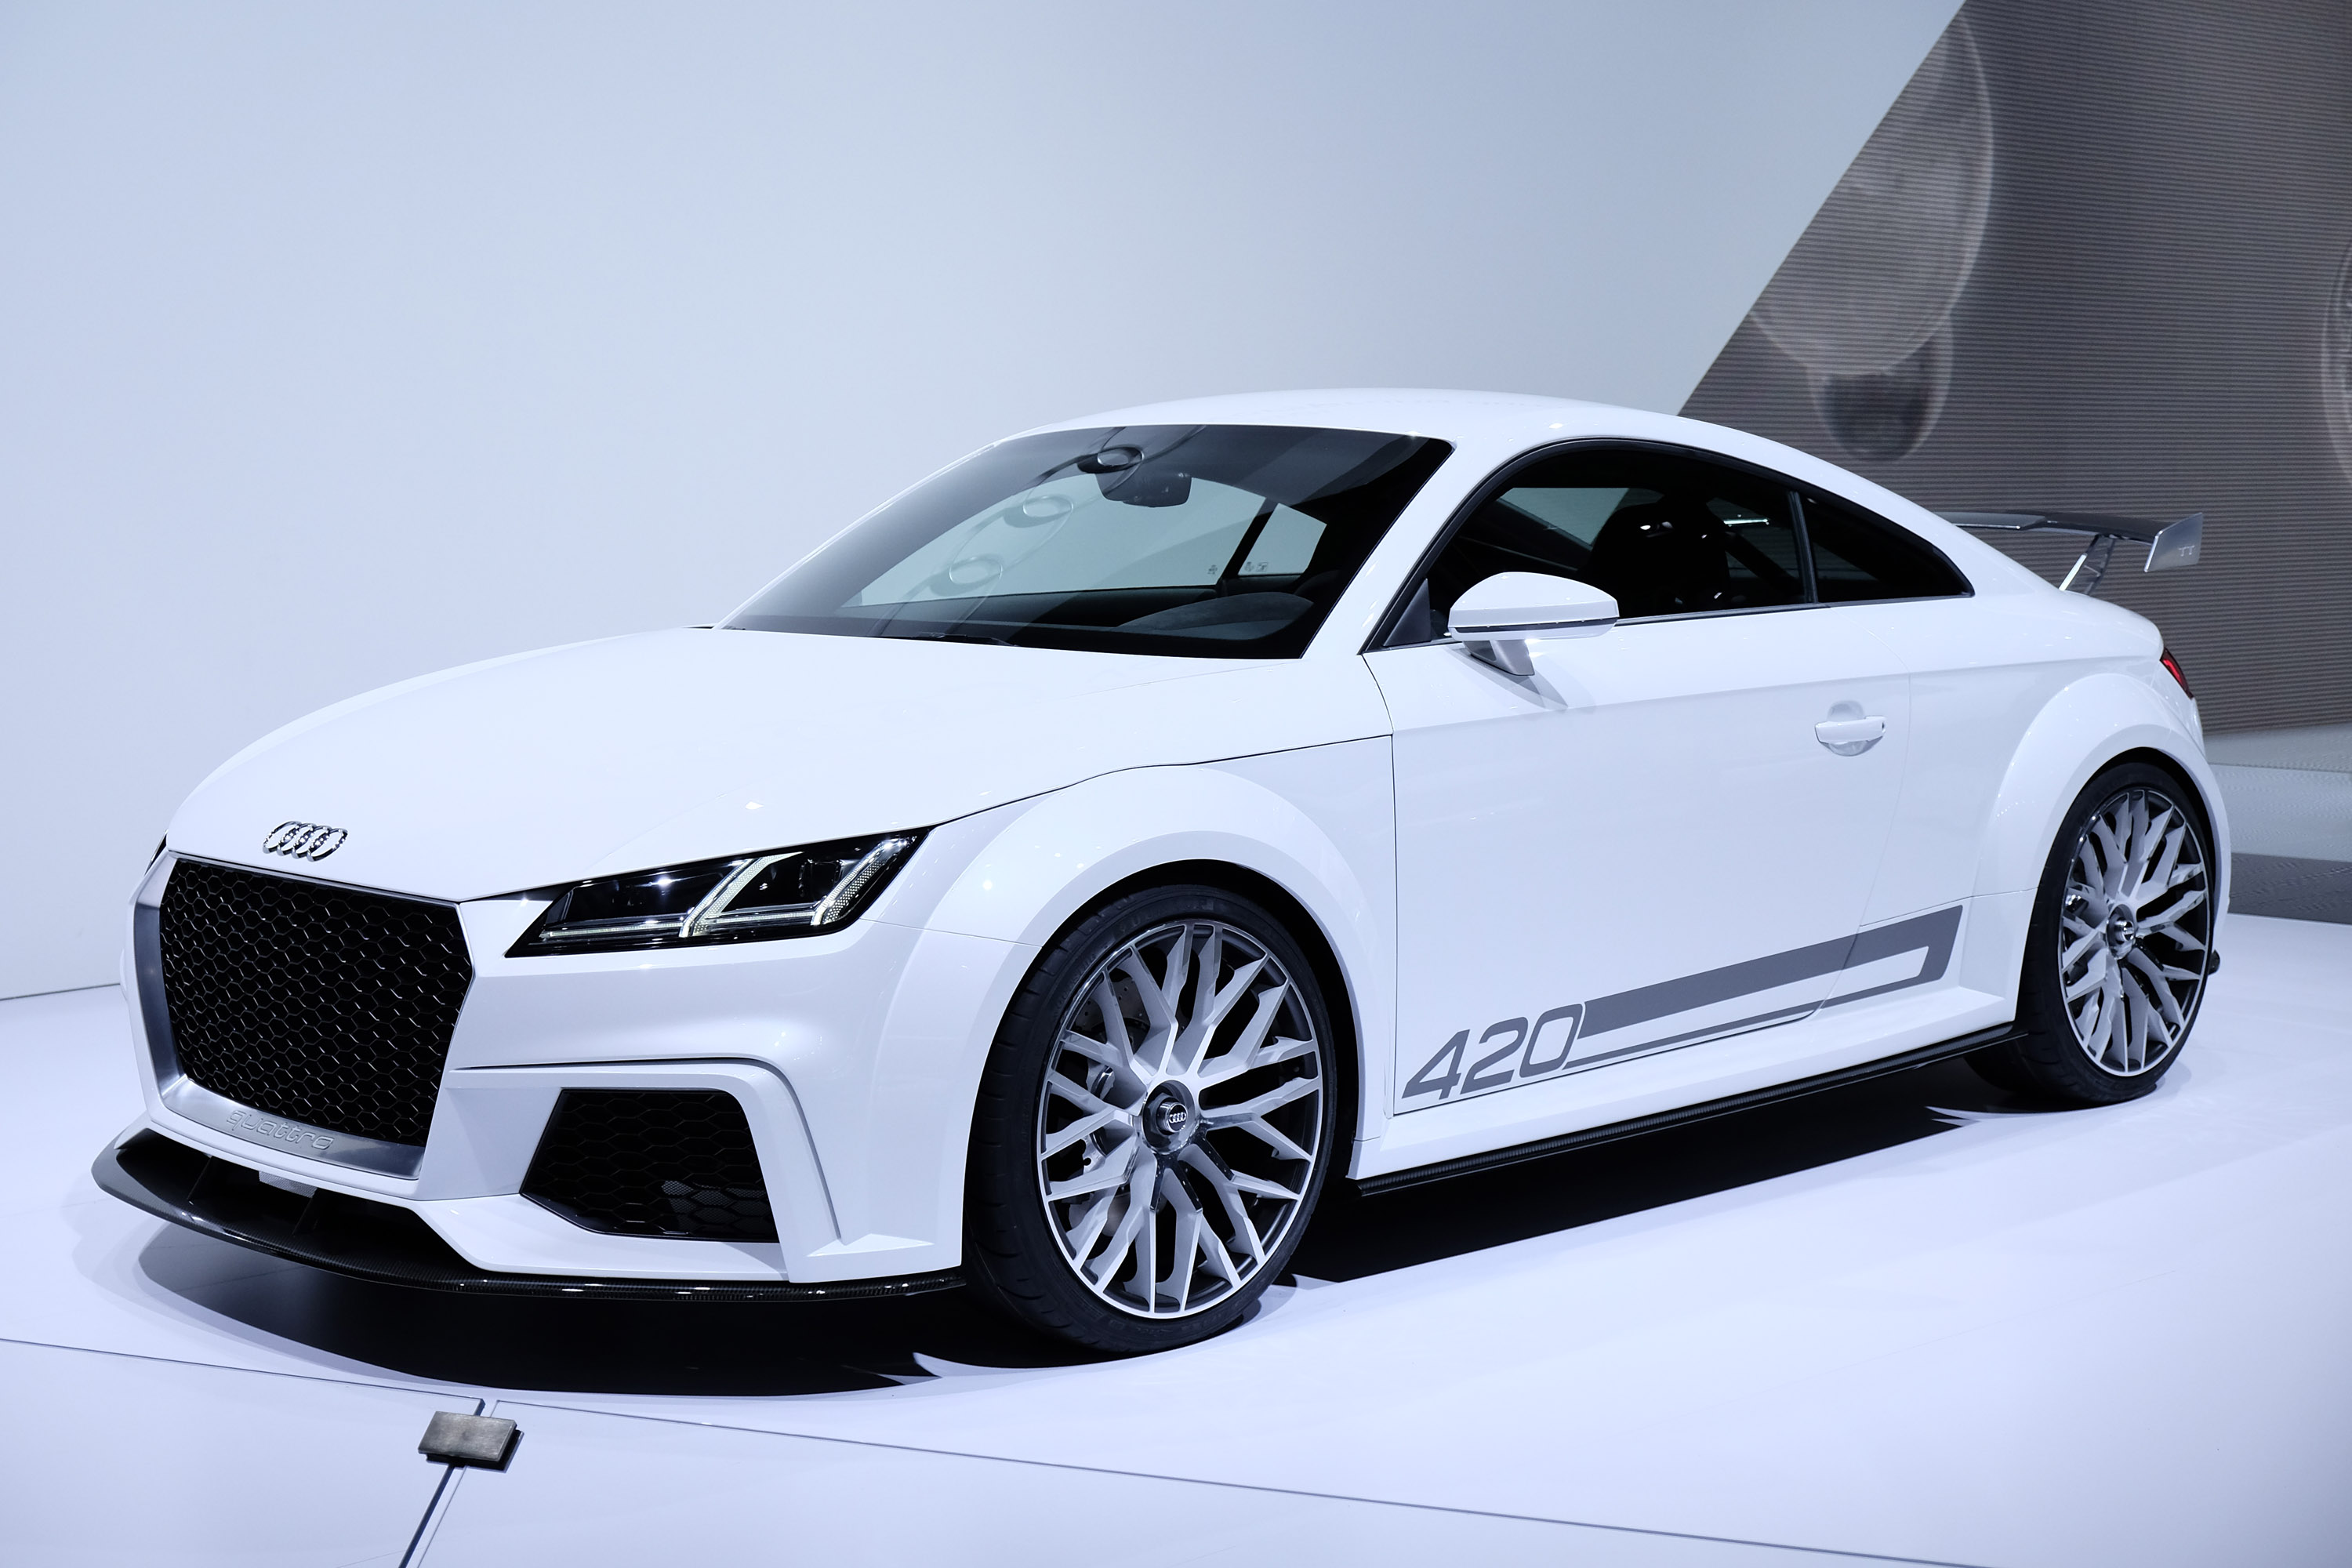 audi tt quattro sport concept geneva 2014 picture 98384. Black Bedroom Furniture Sets. Home Design Ideas